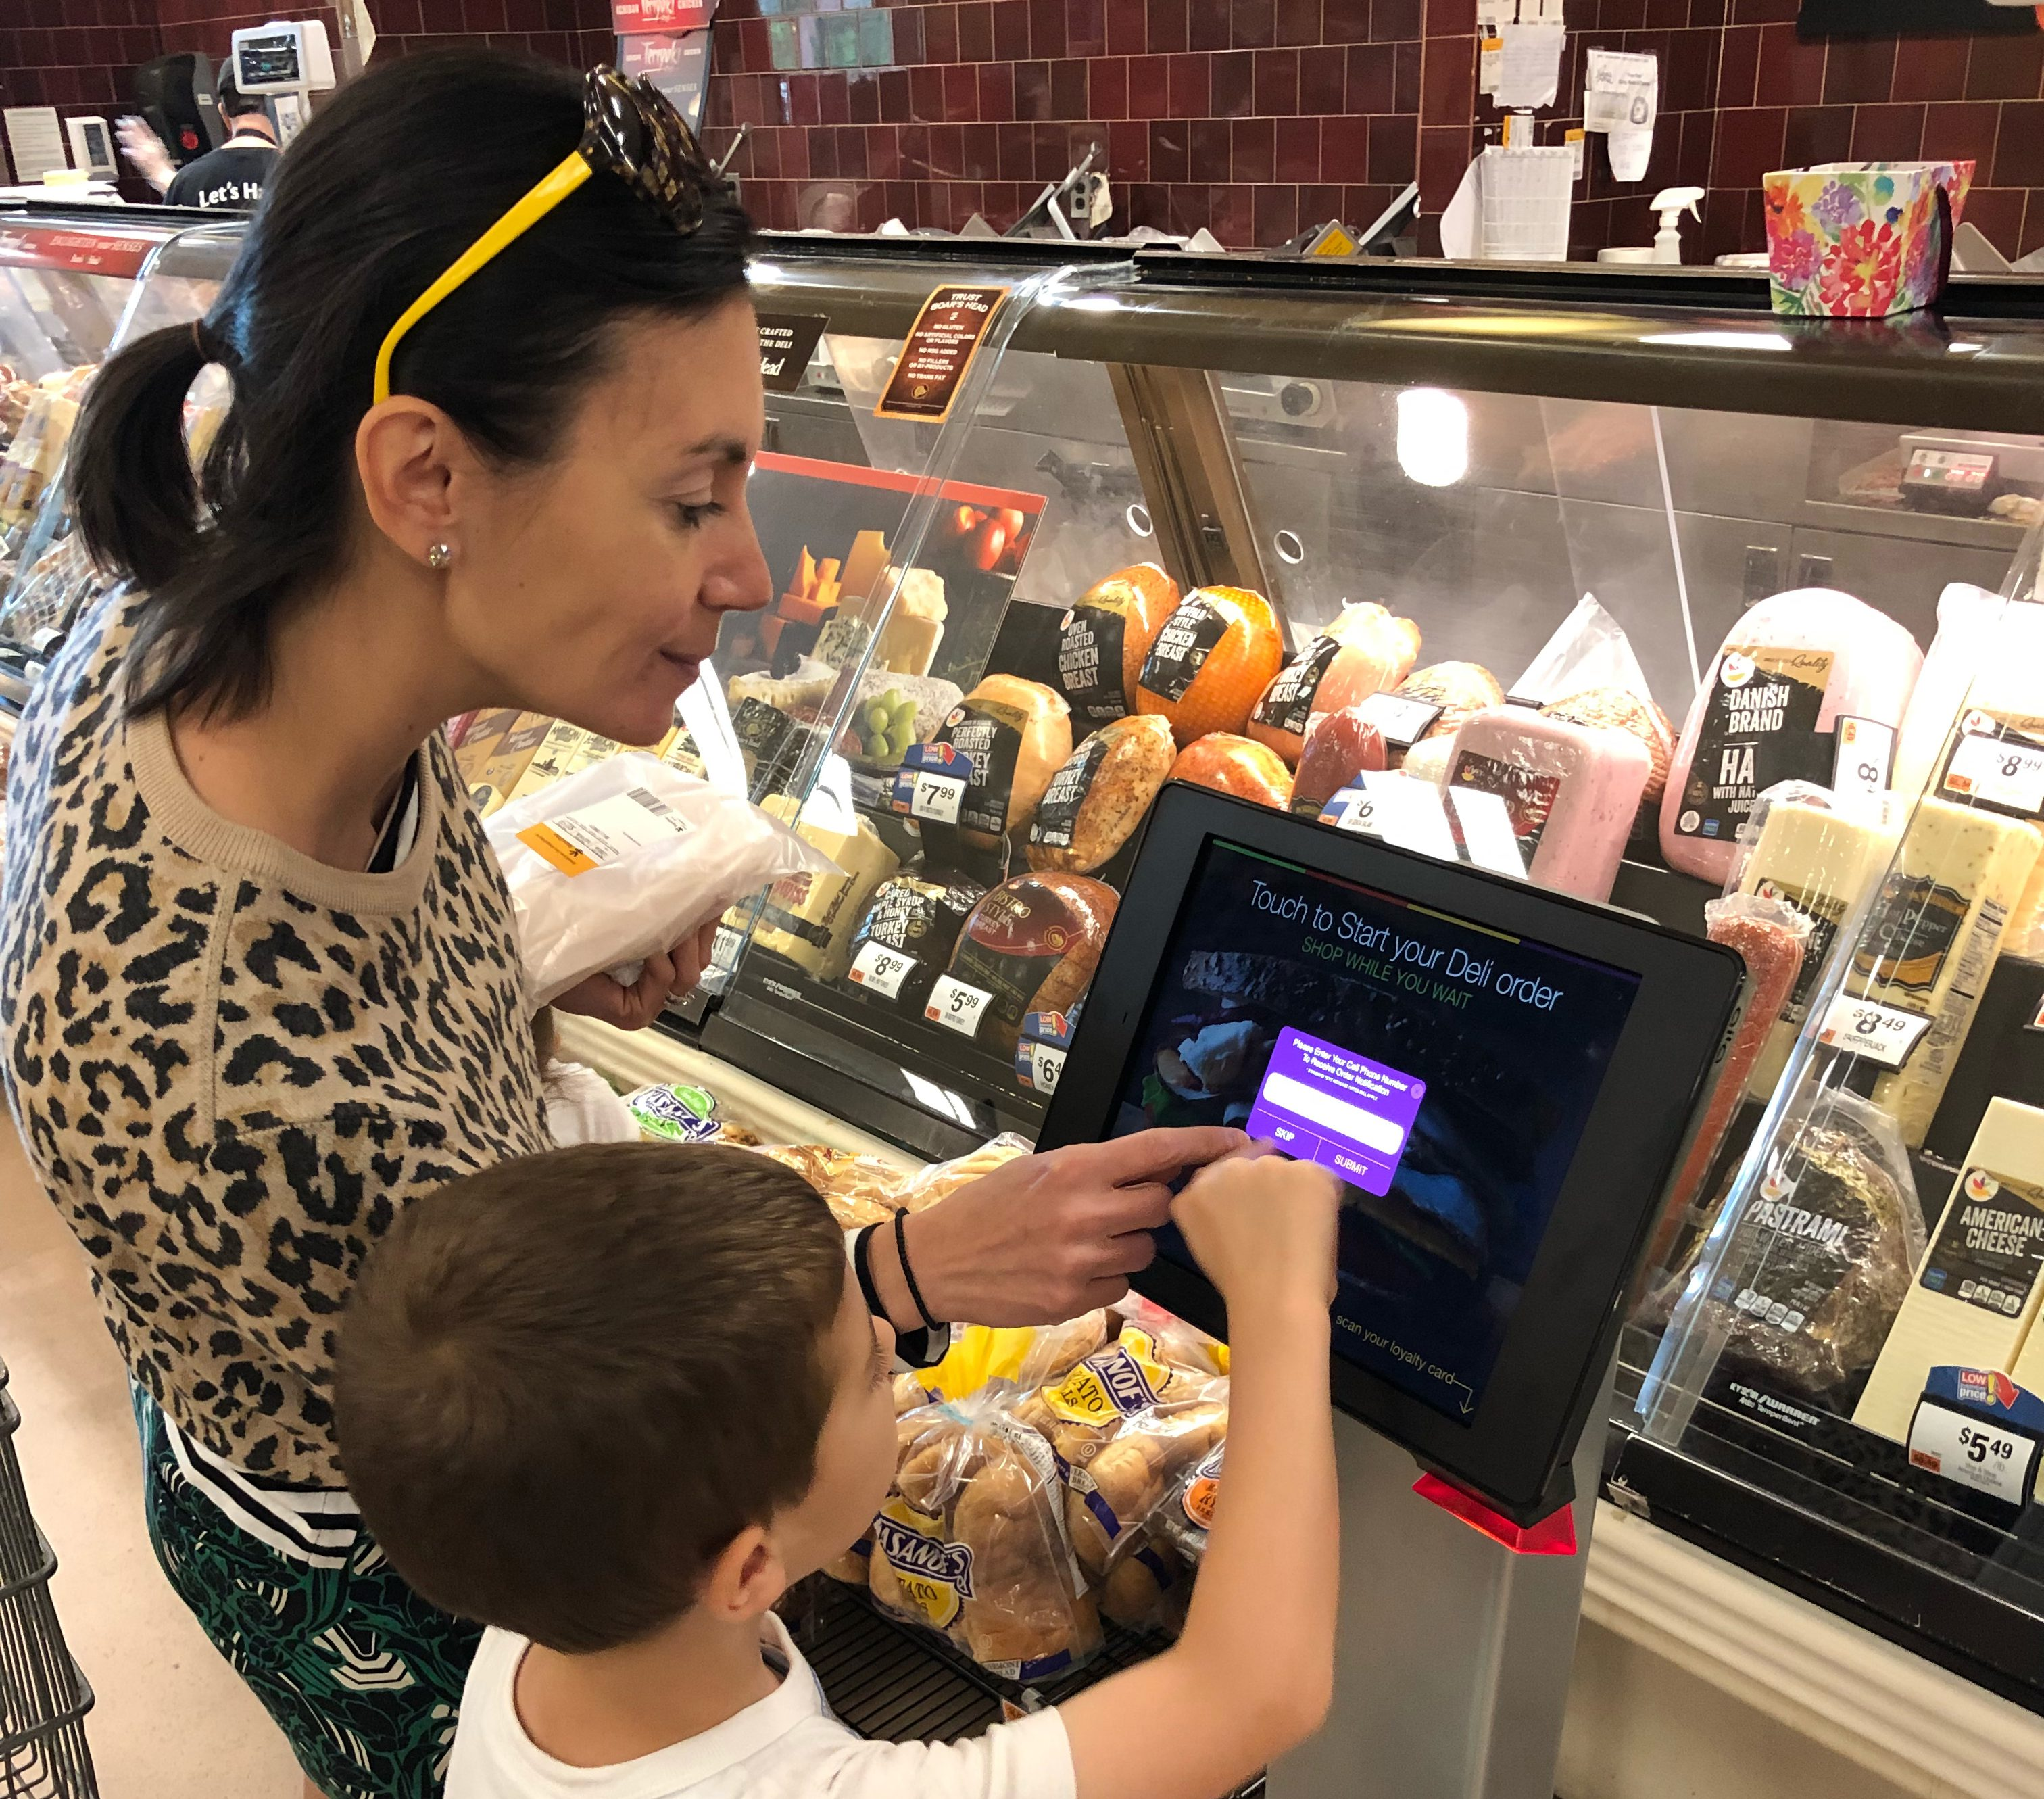 deli-order-kiosk-aila-stop-and-shop-ahold